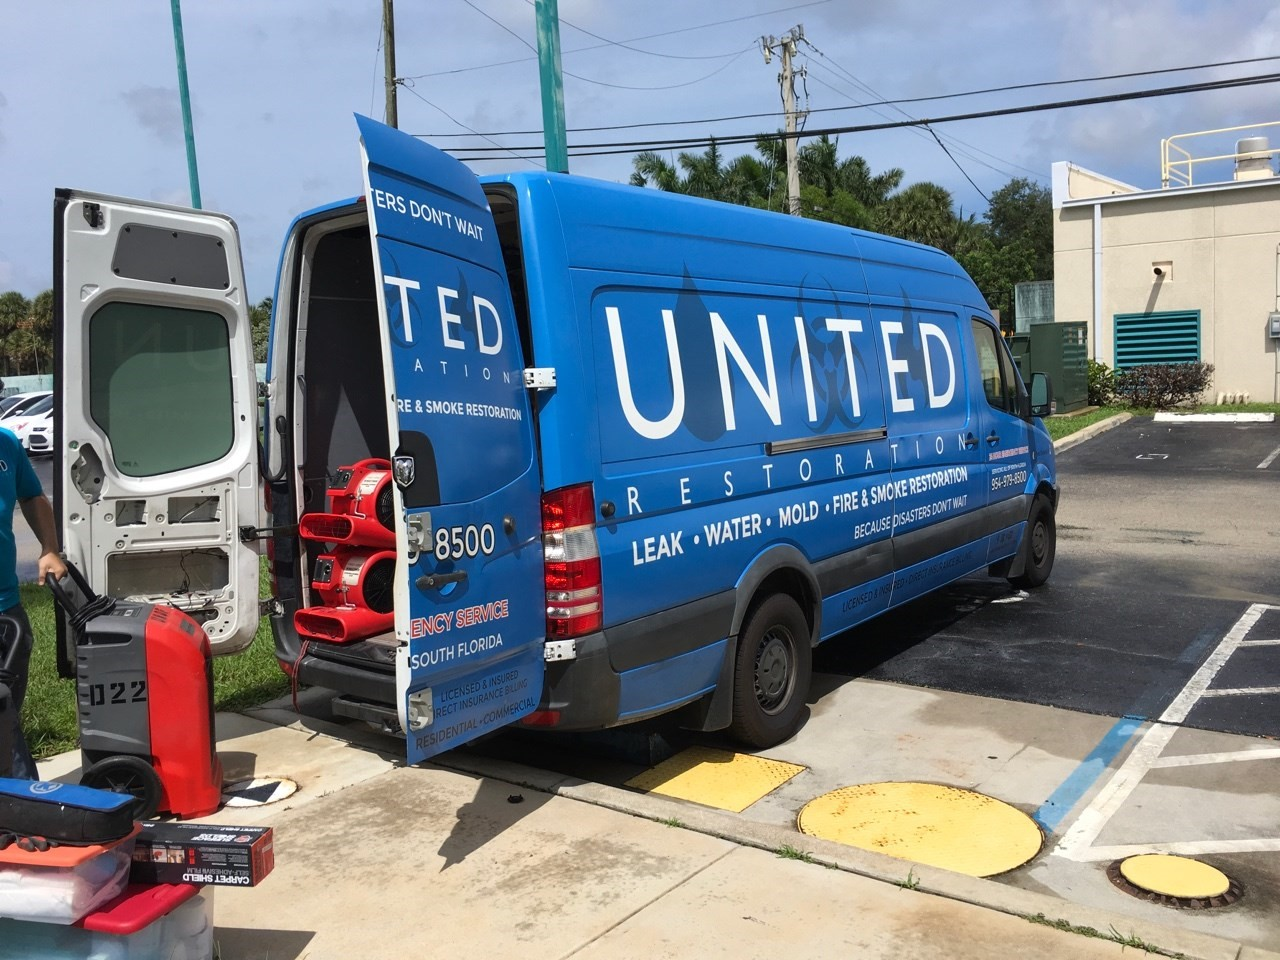 united restoration water damage restoration emegency response truck